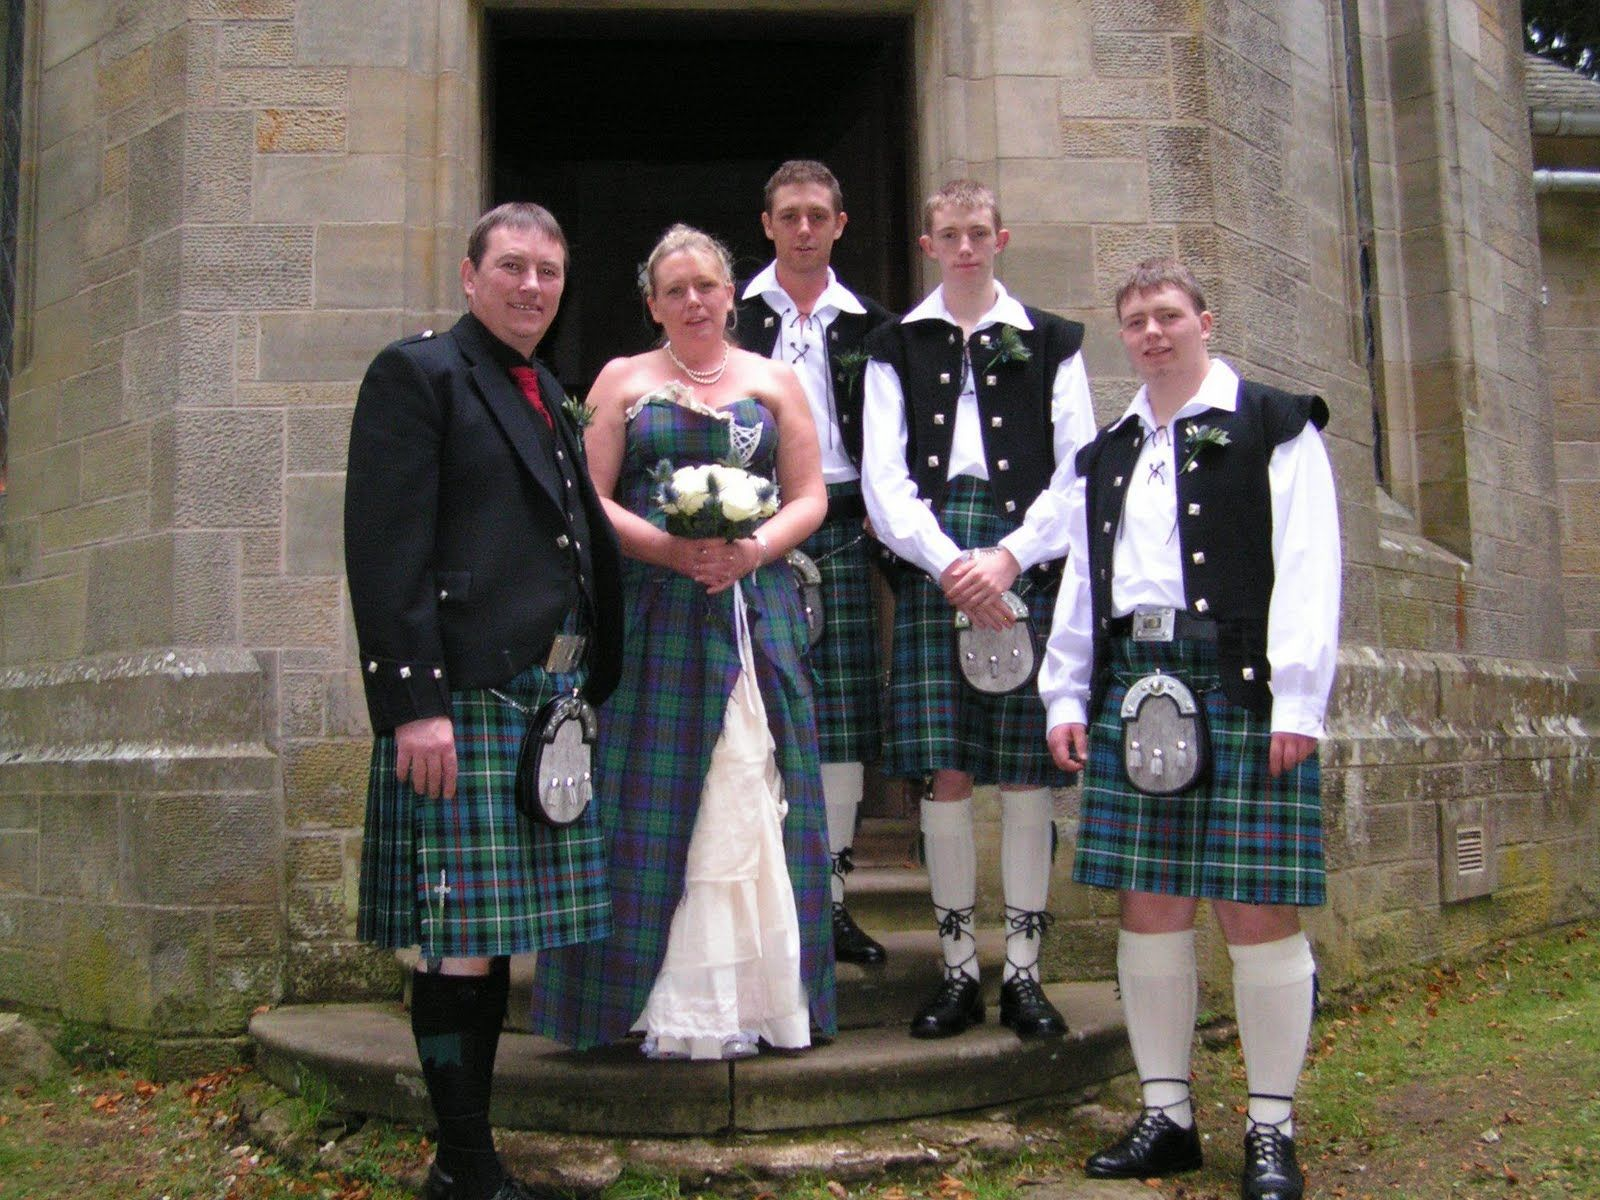 Seven Scottish Wedding Traditions Timeless White Wedding Planning Scotland Scottish Wedding Traditions Scottish Wedding Kilt Wedding